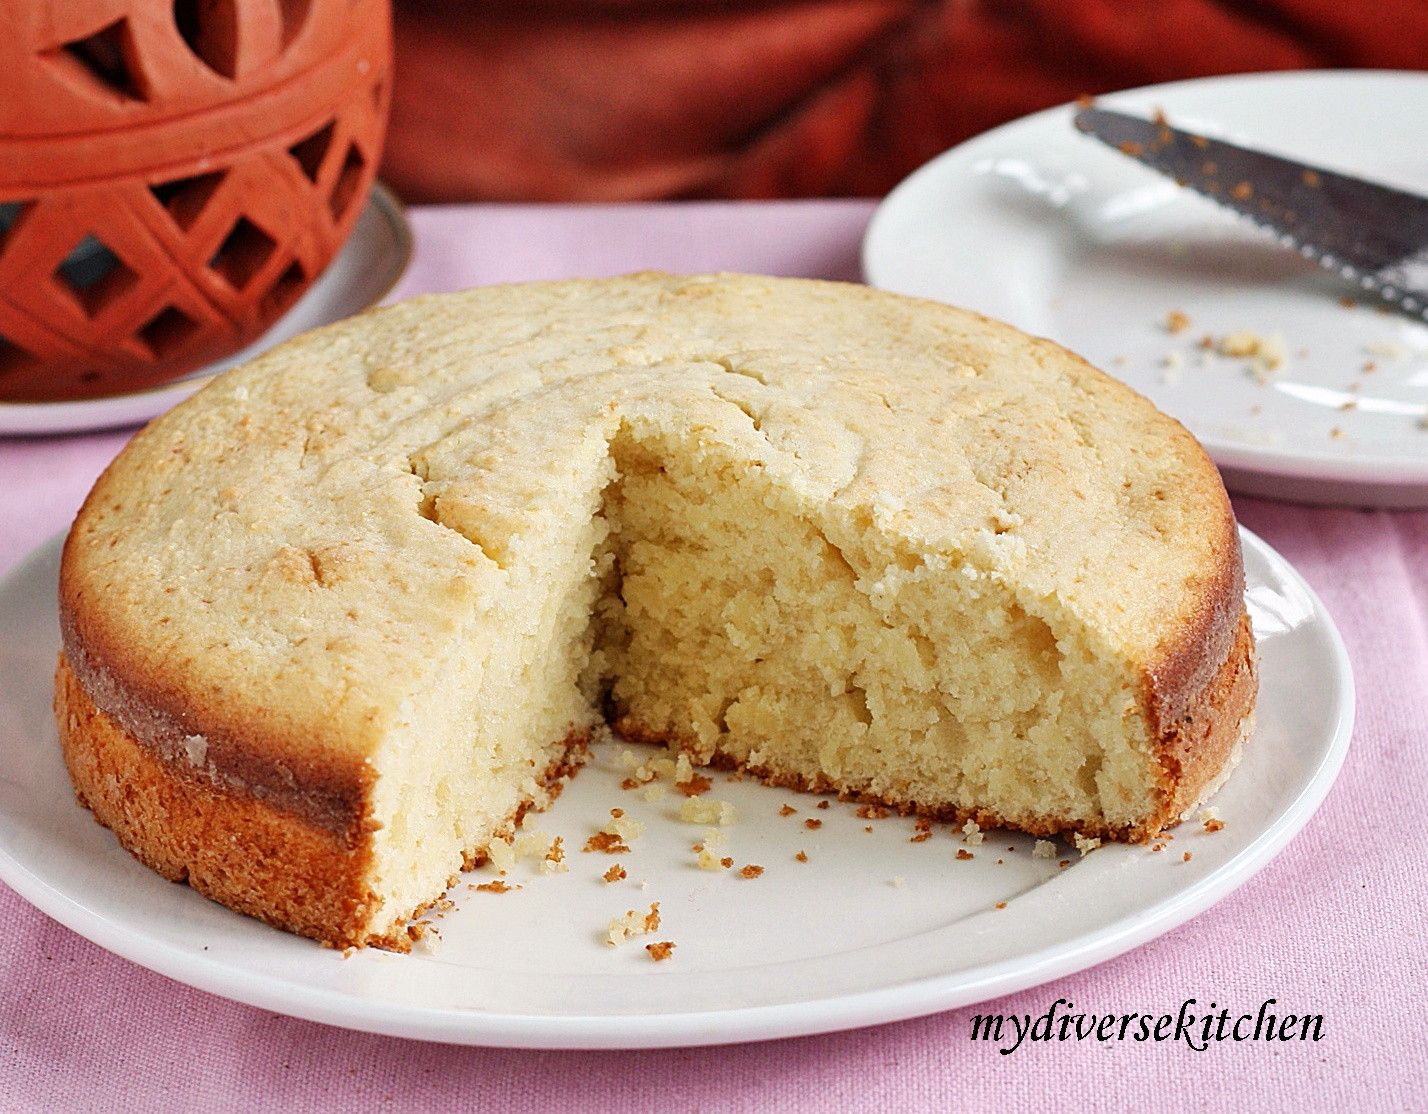 Cake Without Butter Or Baking Powder